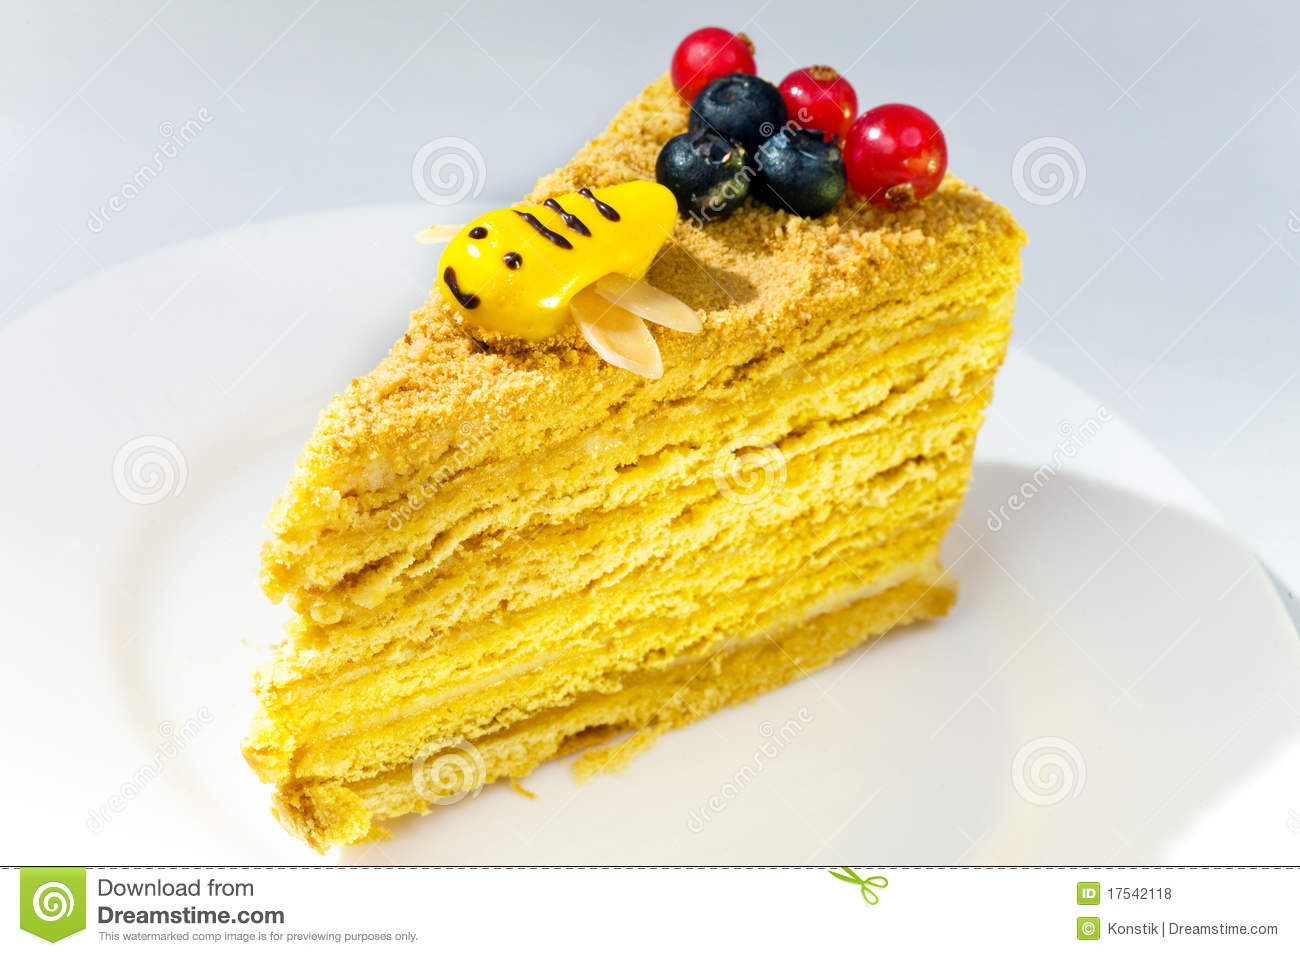 Clipart Of Honey Cake : Piece Of The Honey Cake Decorated With A Bee From Royalty ...